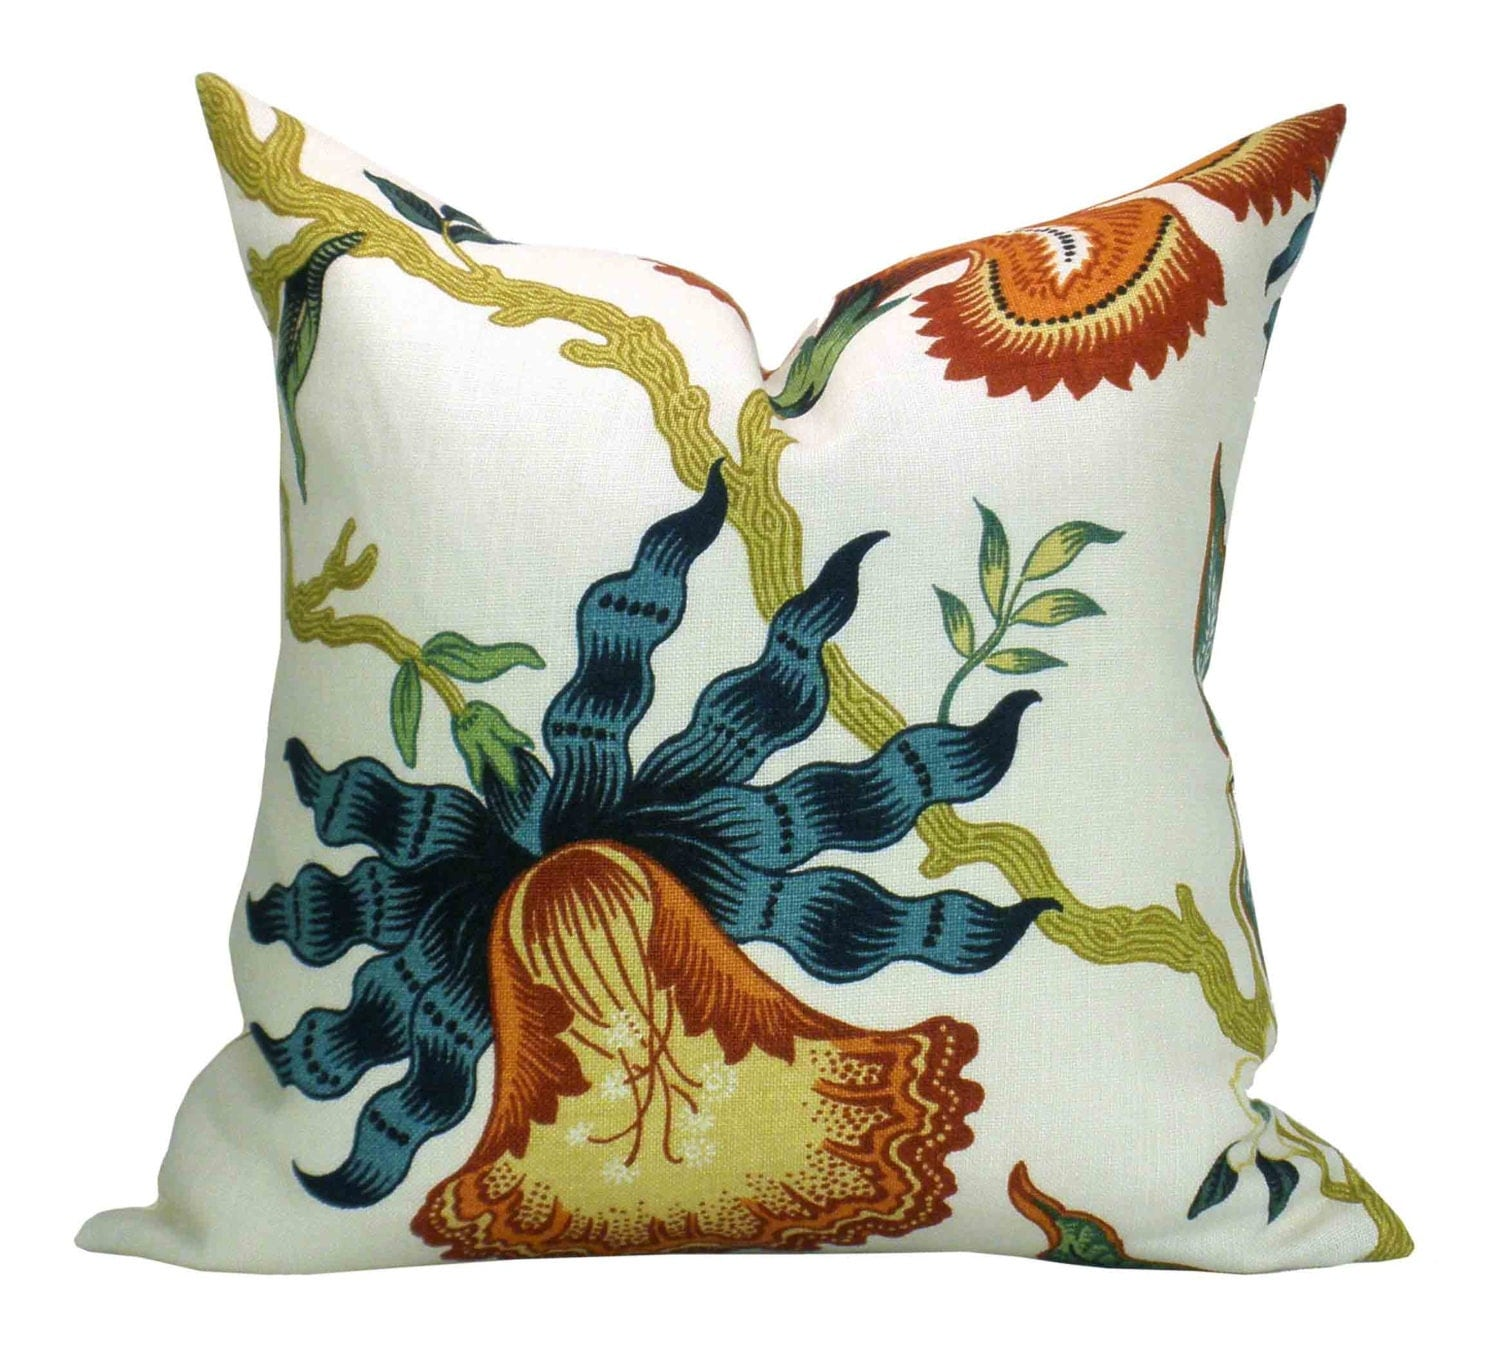 Hothouse Flowers pillow cover in Spark orange blue flower